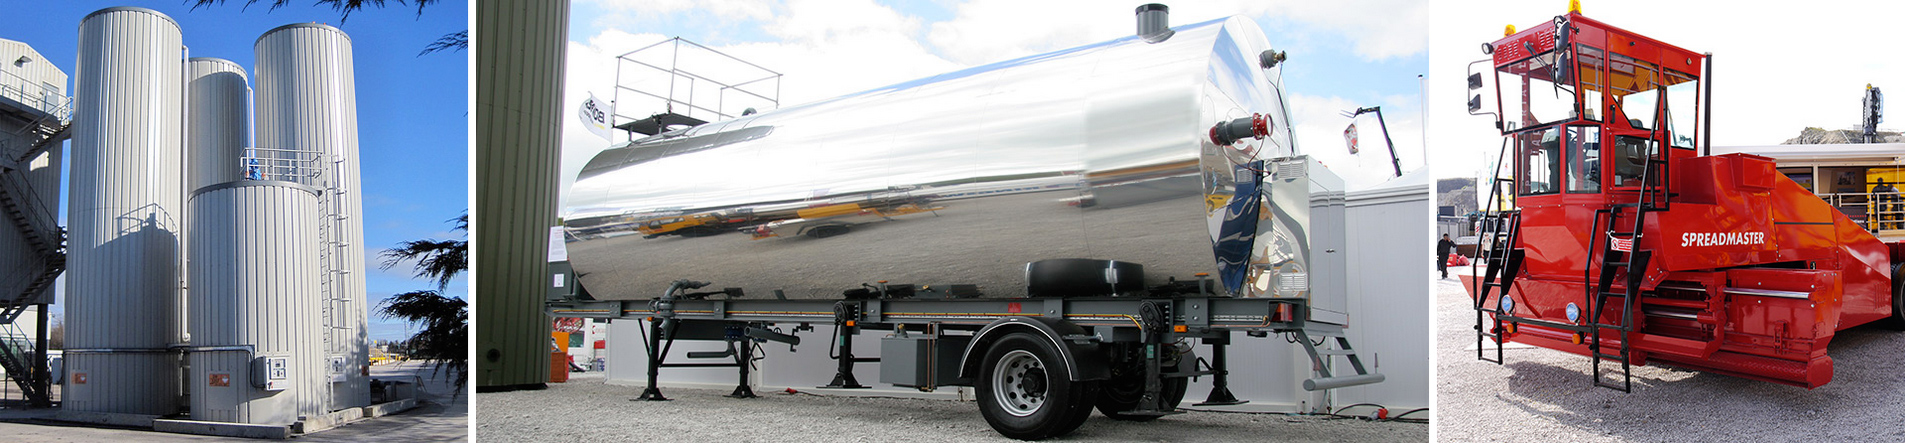 cartem bitumen tanks and chip spreader